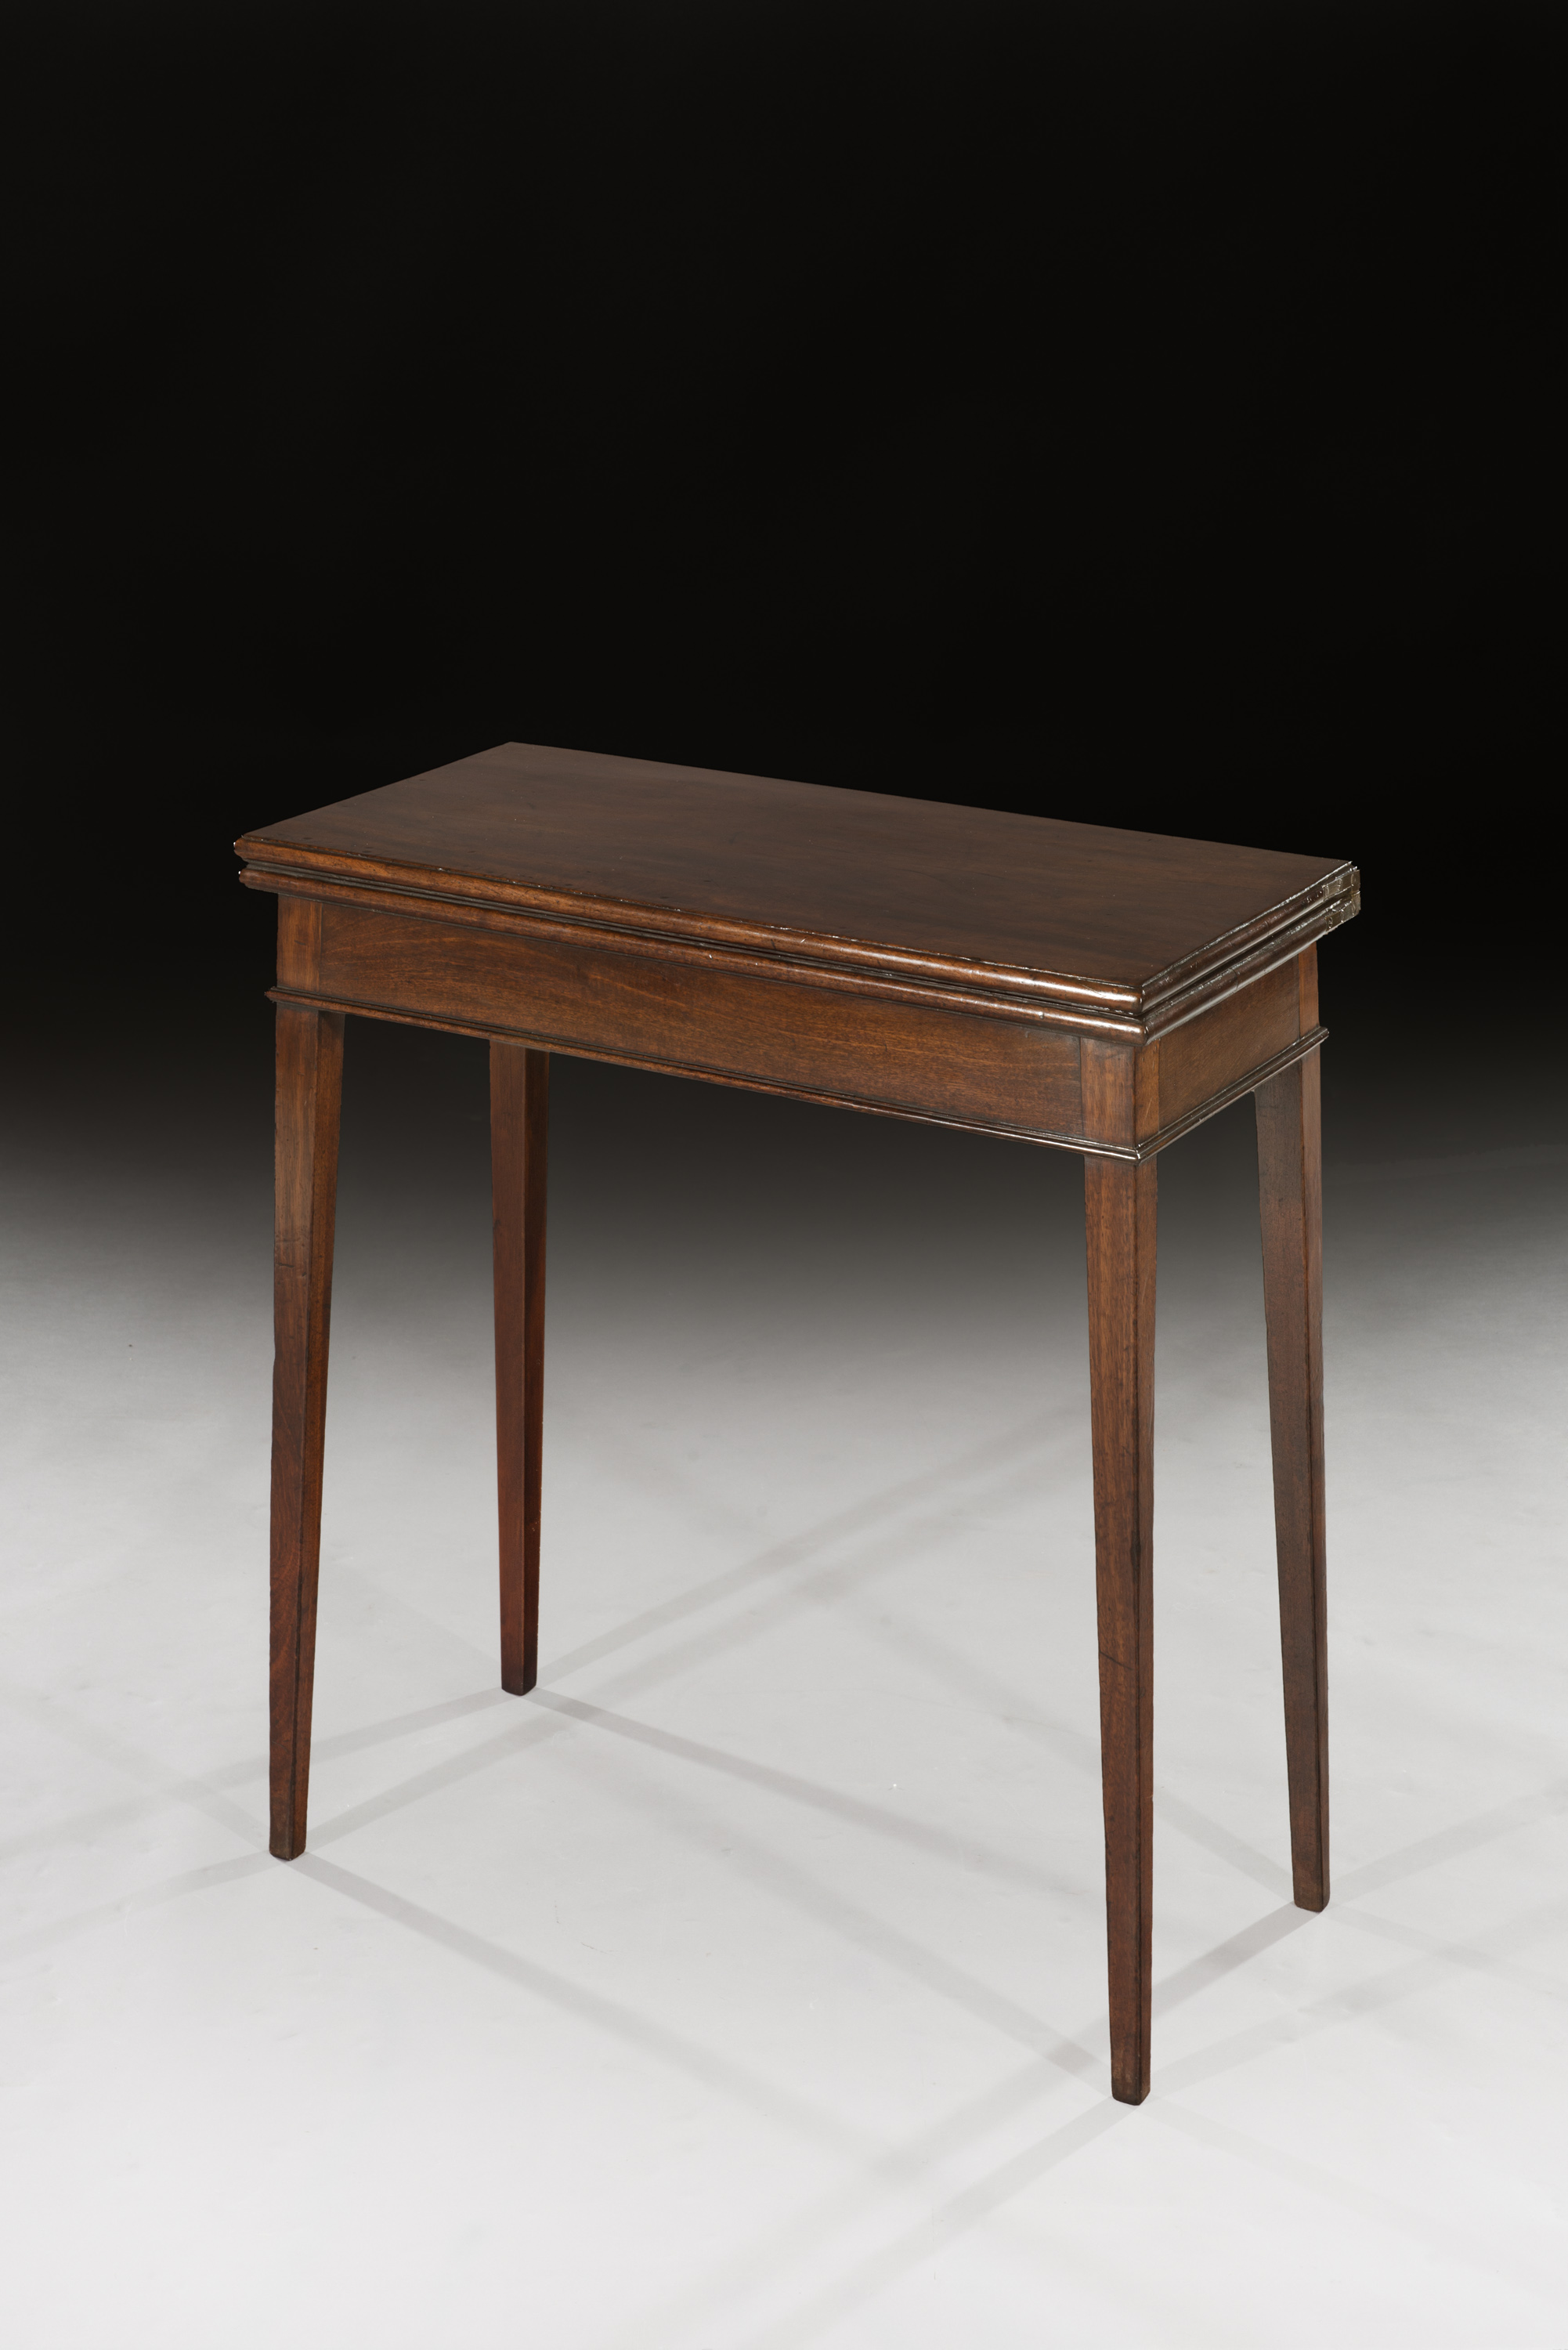 Low Tables For Sale Ottery Antique Furniture Small Mahogany Tea Table